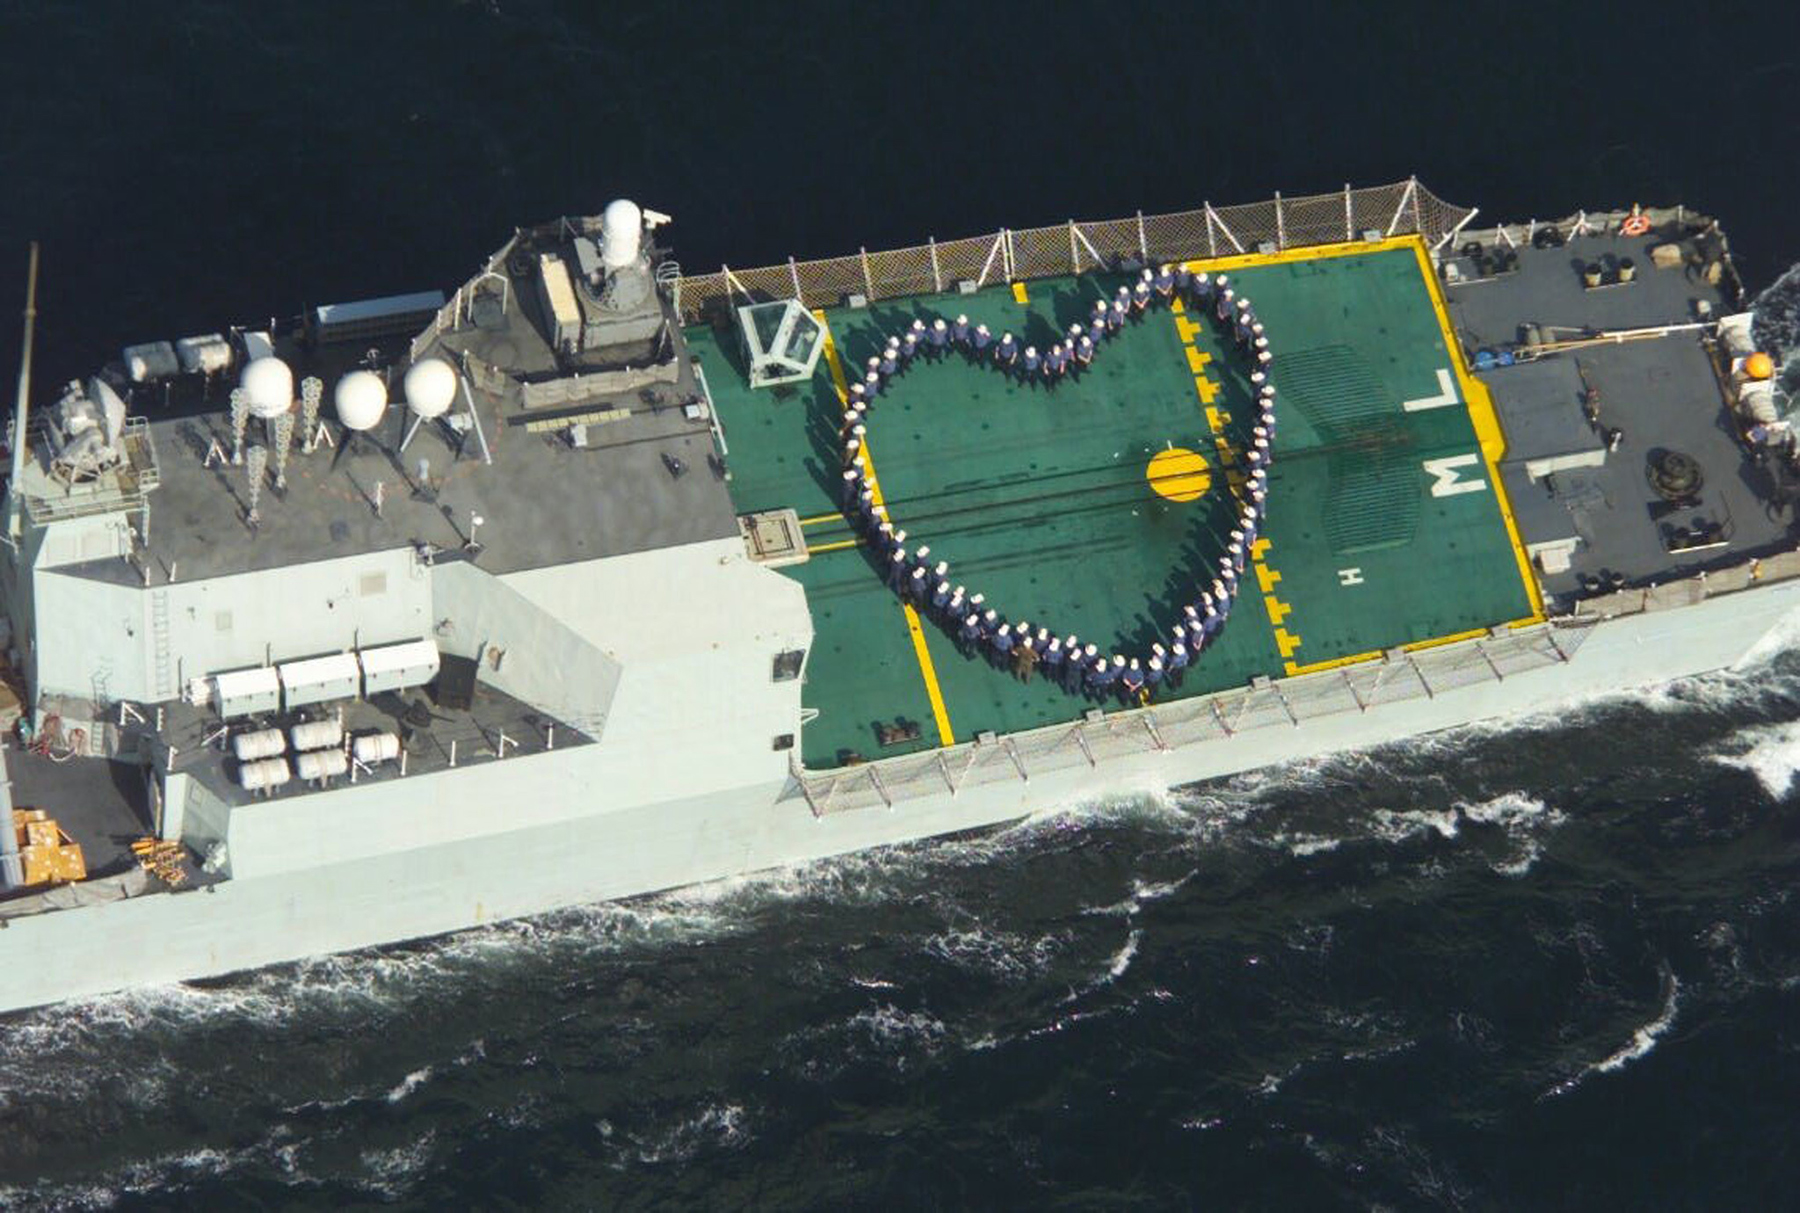 On board Her Majesty's Canadian Ship Montreal, deployed personnel find an original way to wish their families a happy Valentine's Day on February 14, 2003, by making the shape of a heart on the ship's flight deck, normally occupied by the CH-124 Sea King helicopter from which the photo is being taken. PHOTO: DND, PM2003-0017